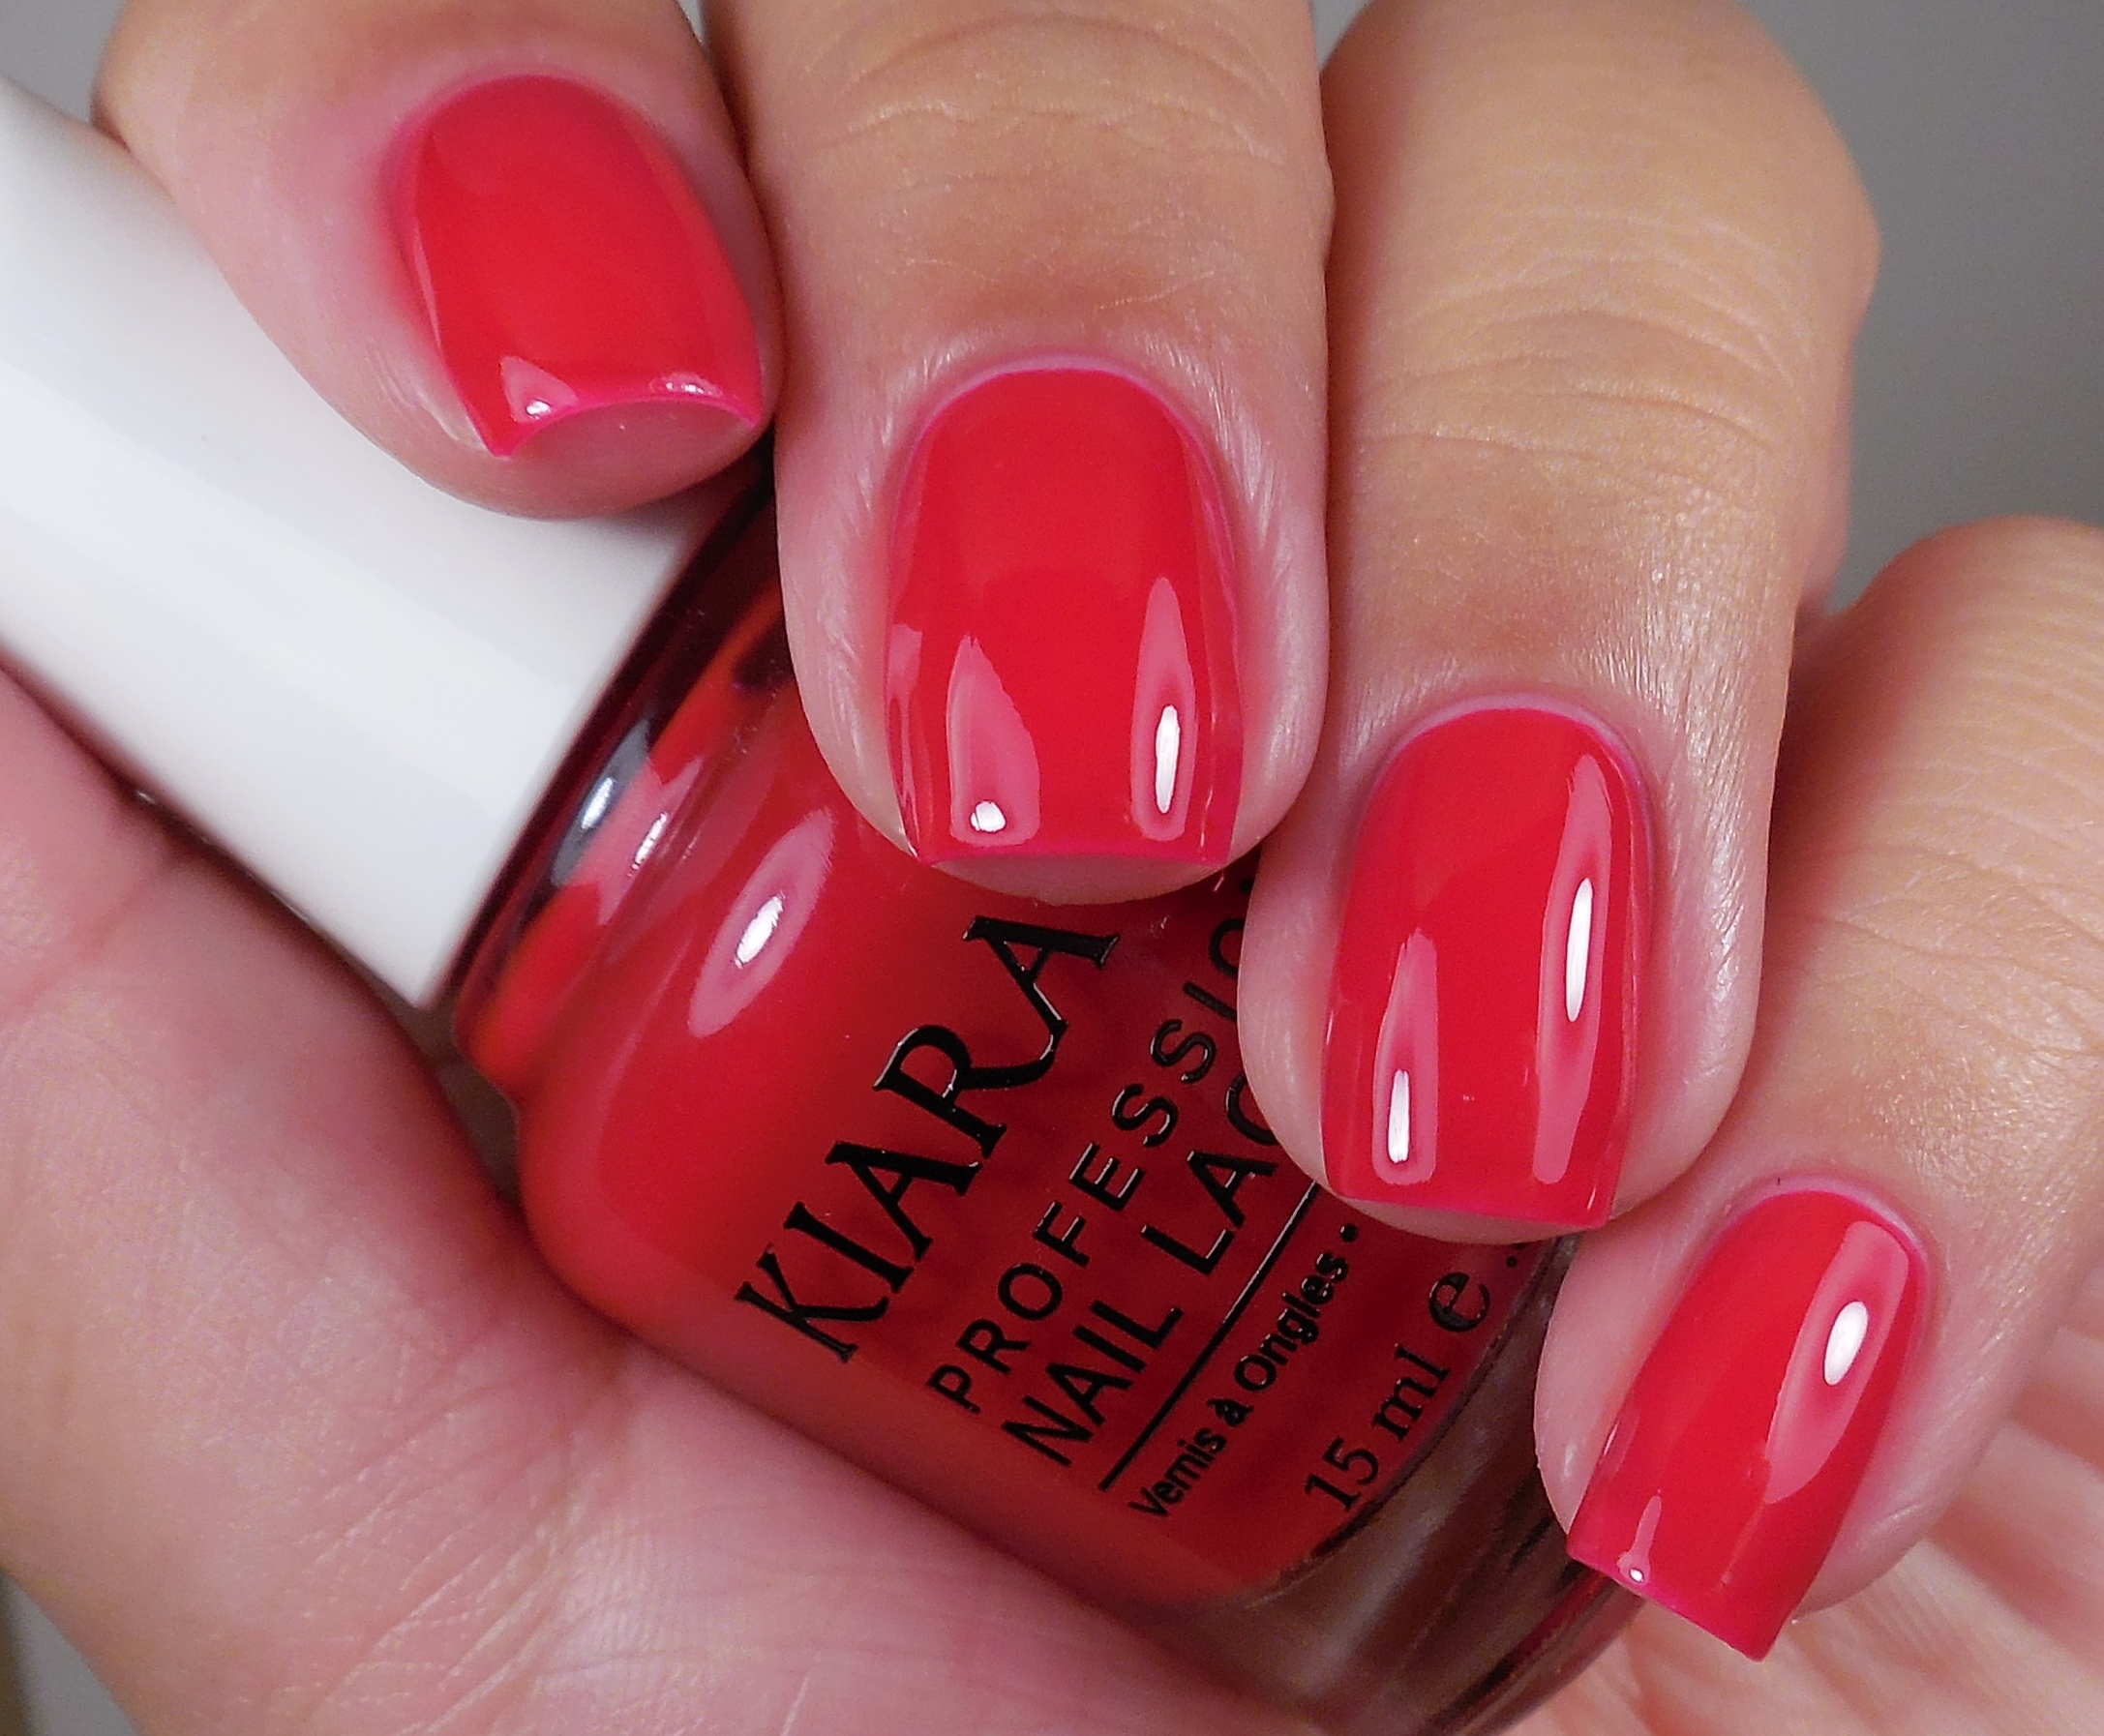 Kiara Sky In Bloom 1 - Of Life and Lacquer